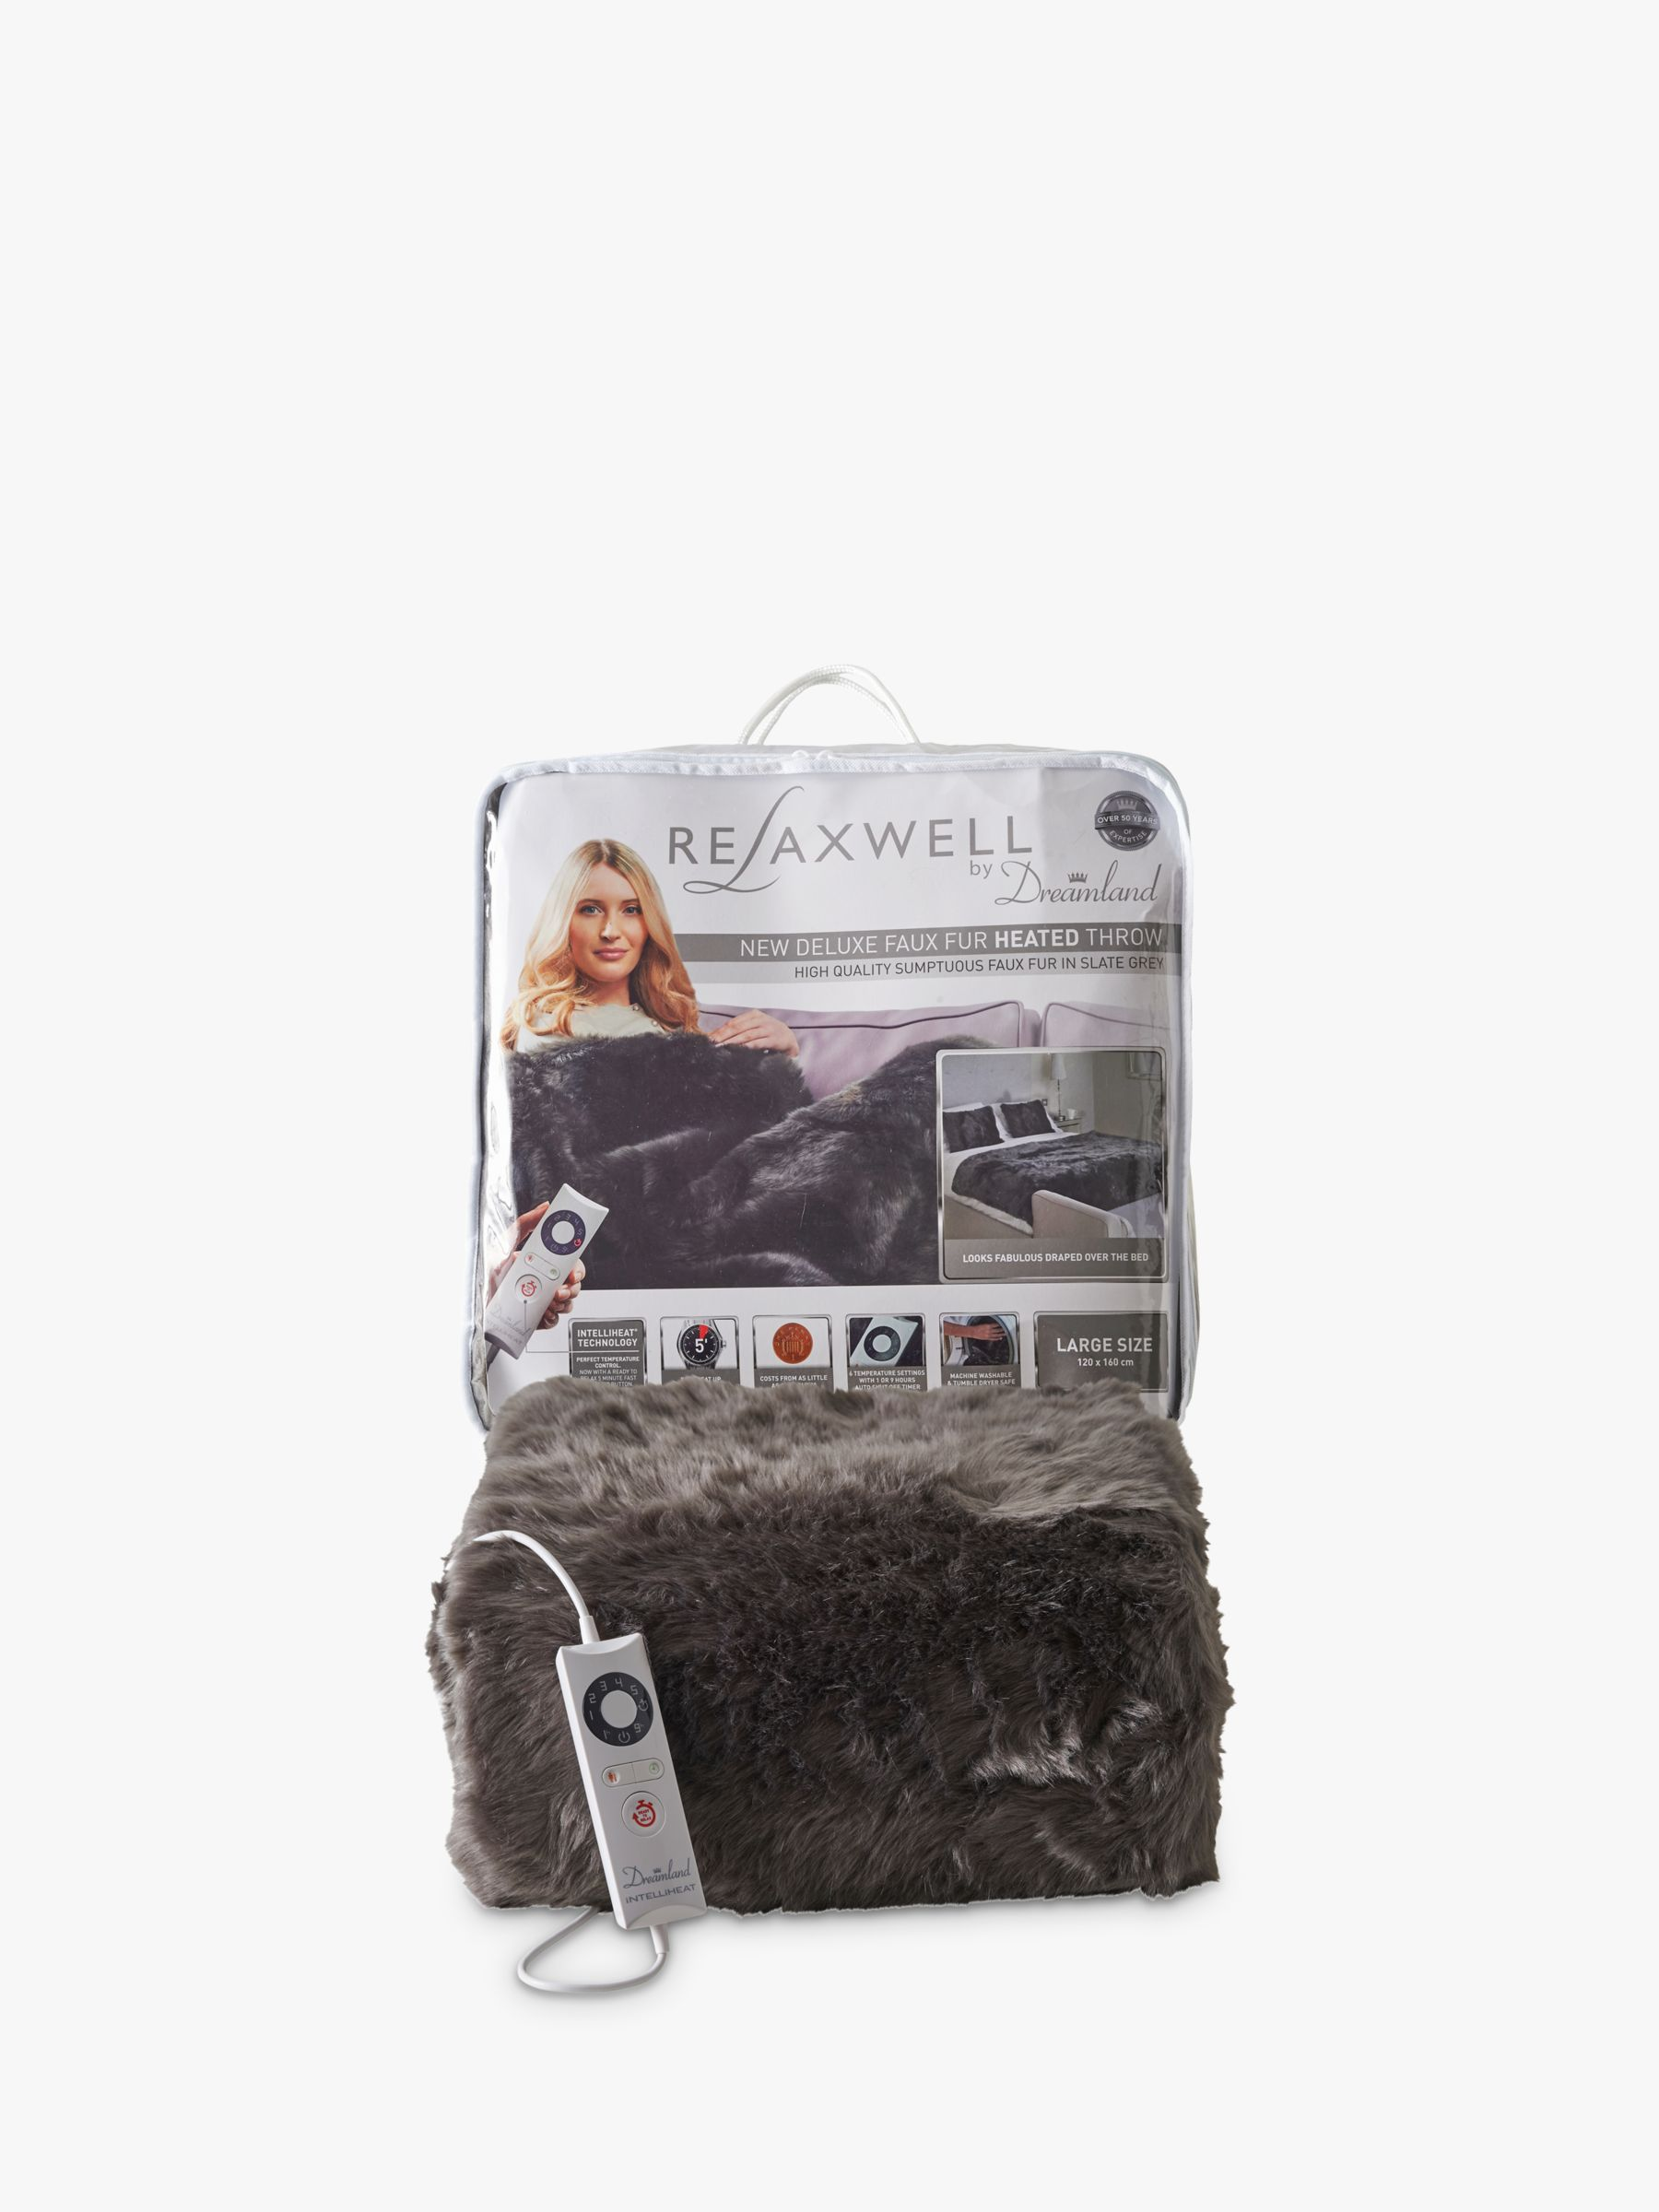 Dreamland Dreamland Relaxwell Deluxe Faux Fur Heated Throw, Grey